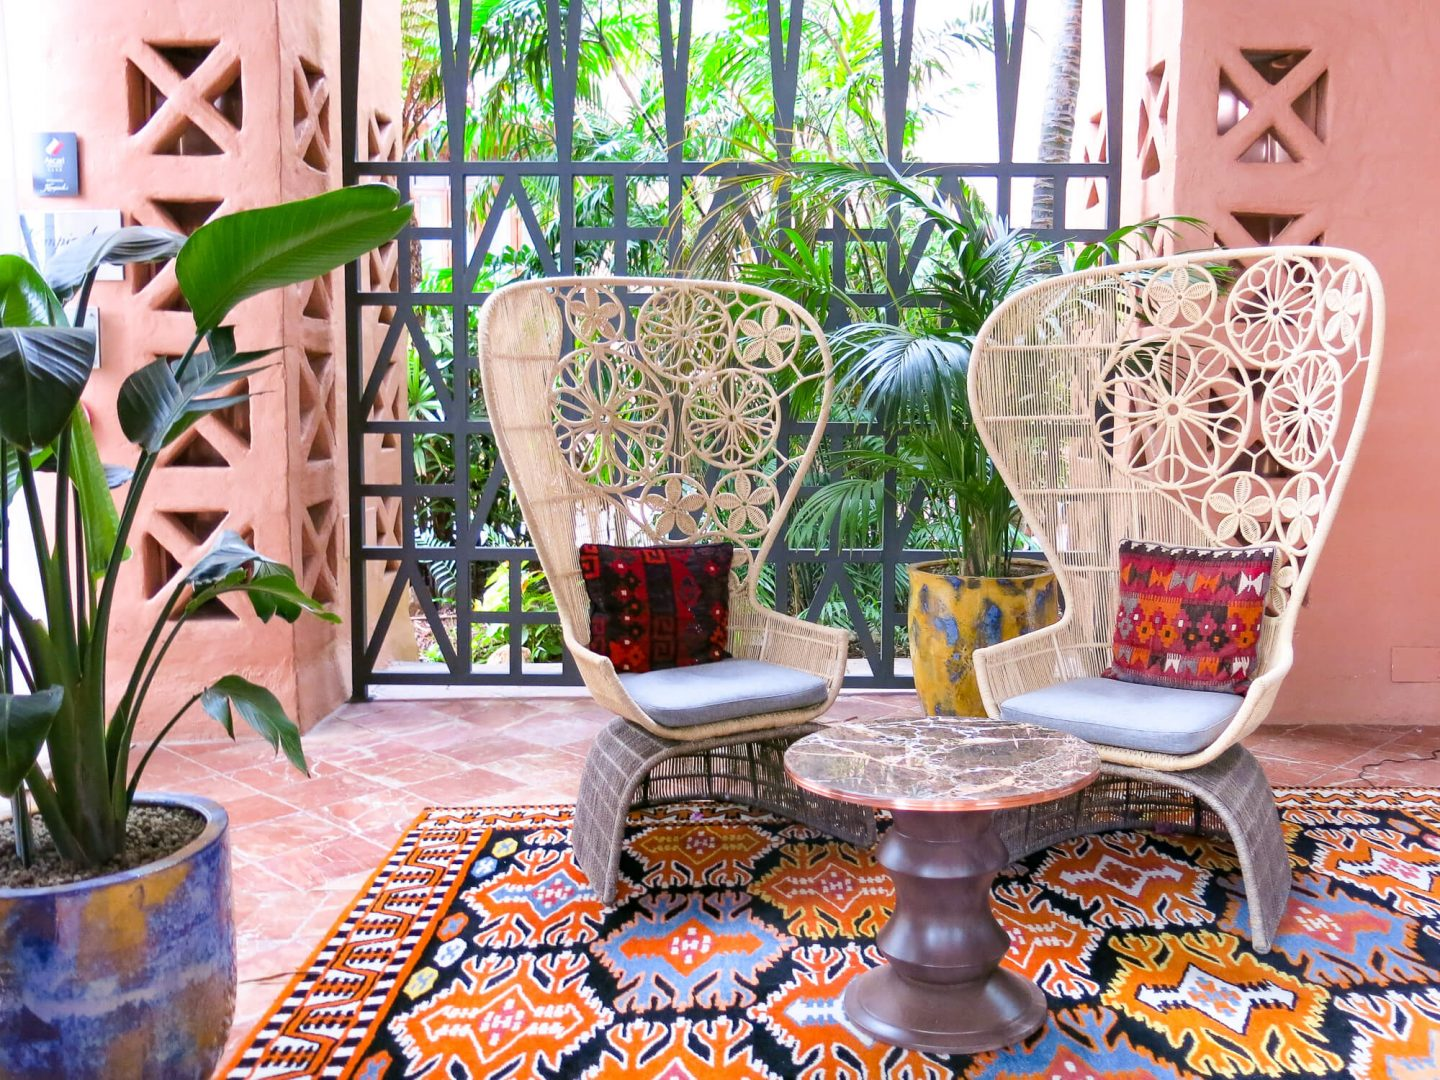 The entrance at Kempinski Hotel Bahía, Spain. Bohemian wicker chairs and rugs. 5 star hotel in Andalusia near Marbella.